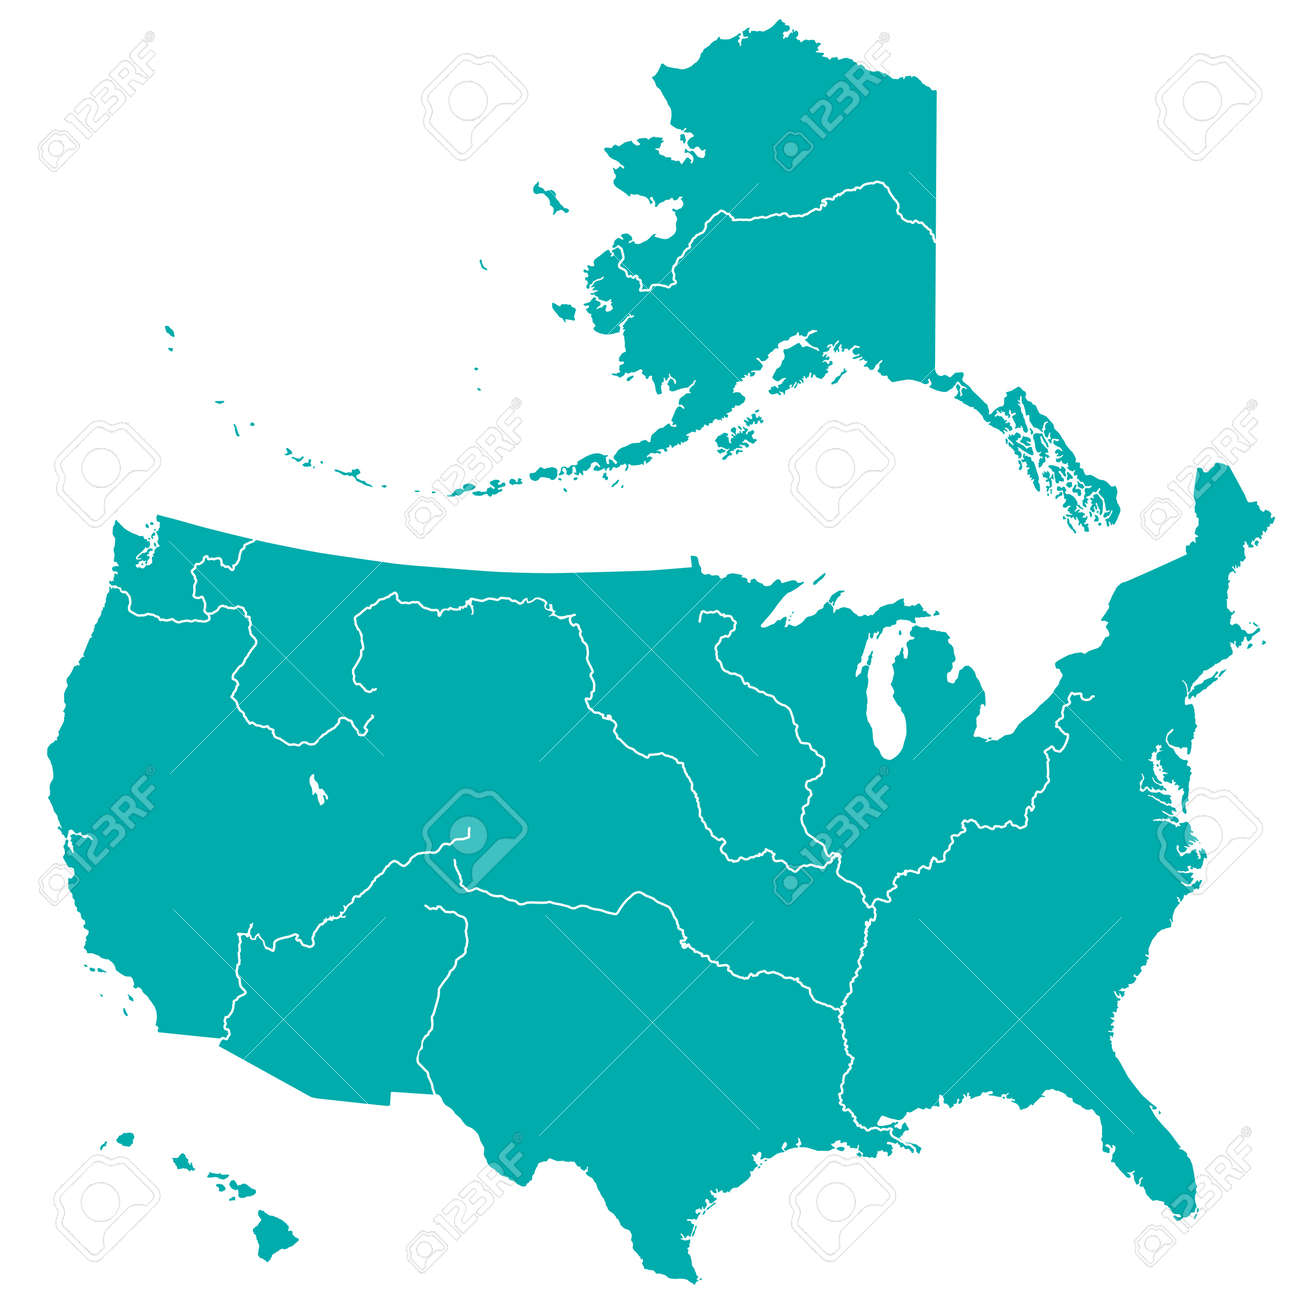 terrestrial silhouette map of the united states with major rivers and lakes all objects are